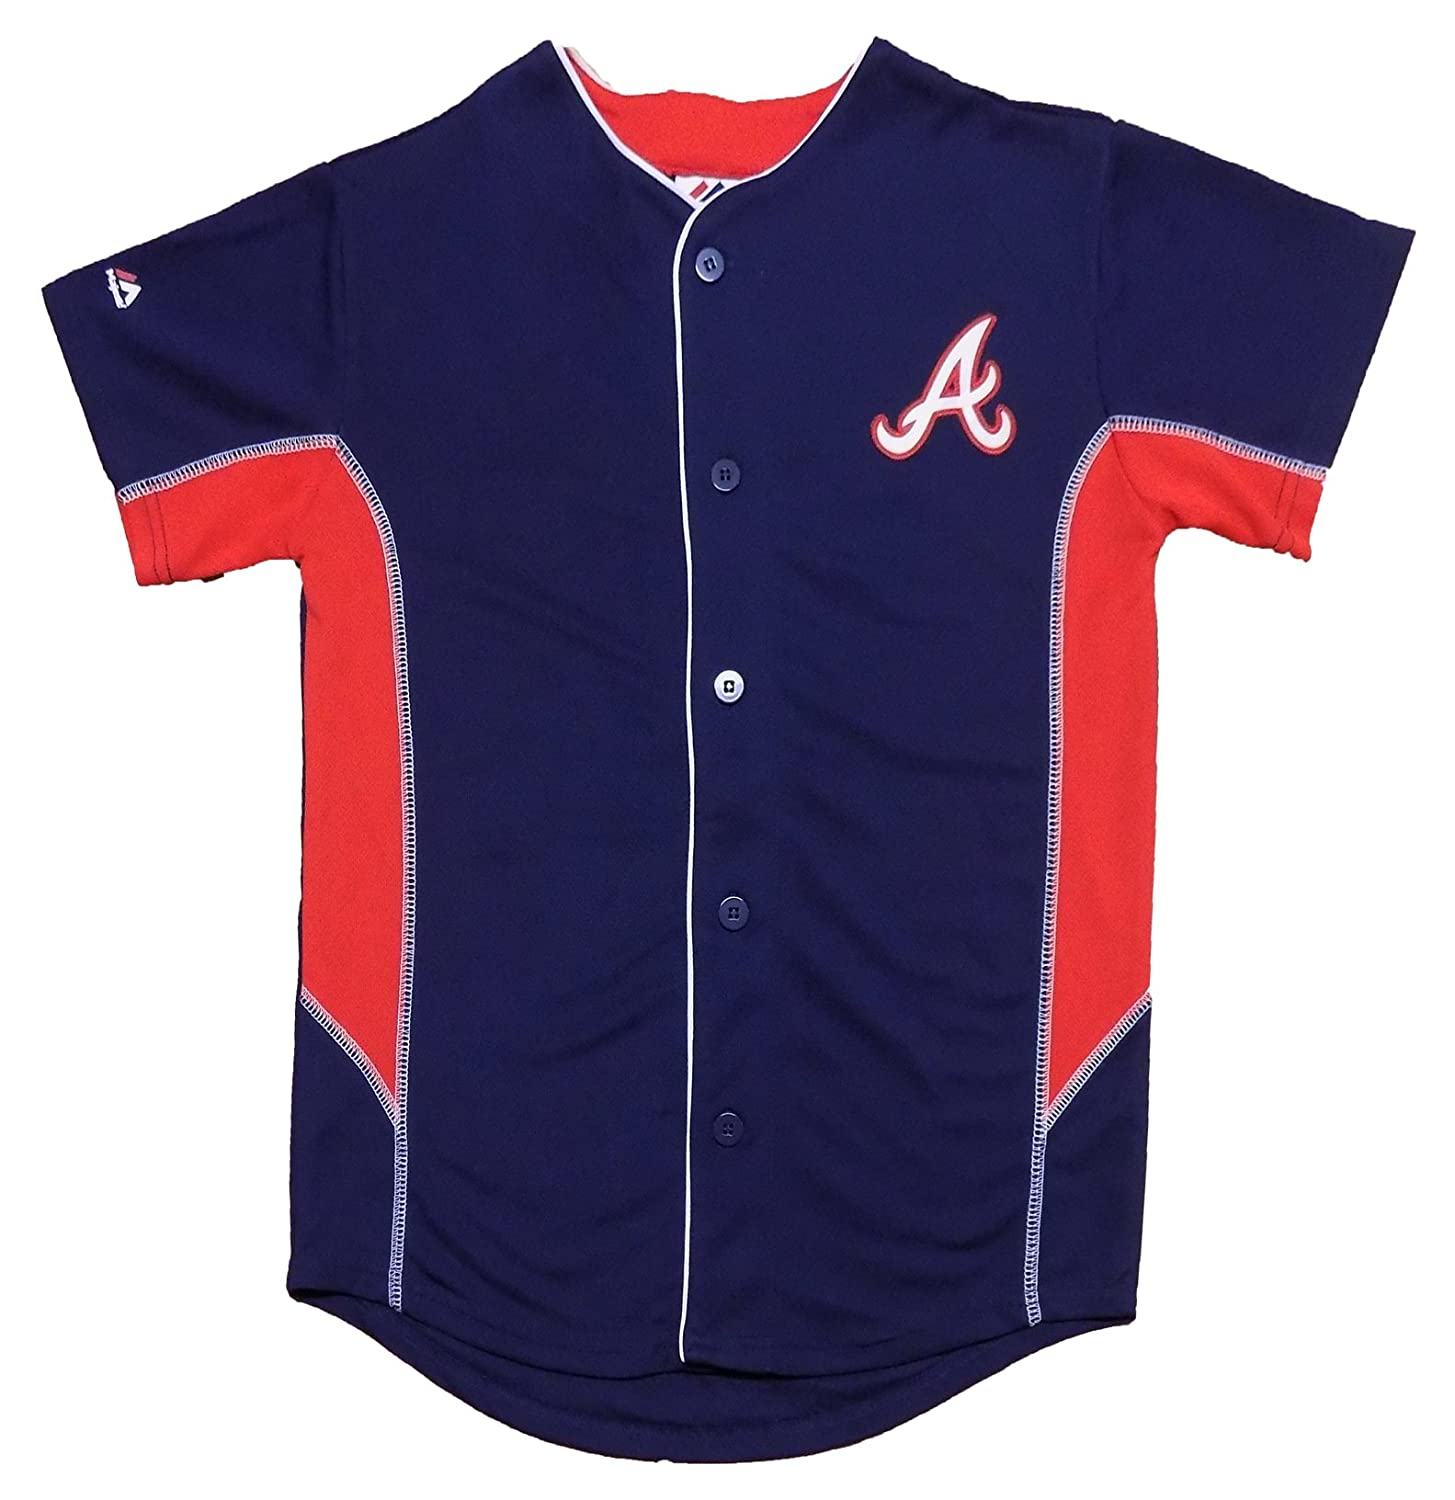 6f1d7632899 OuterStuff Atlanta Braves Blank Navy Blue Youth Team Leader Jersey ...